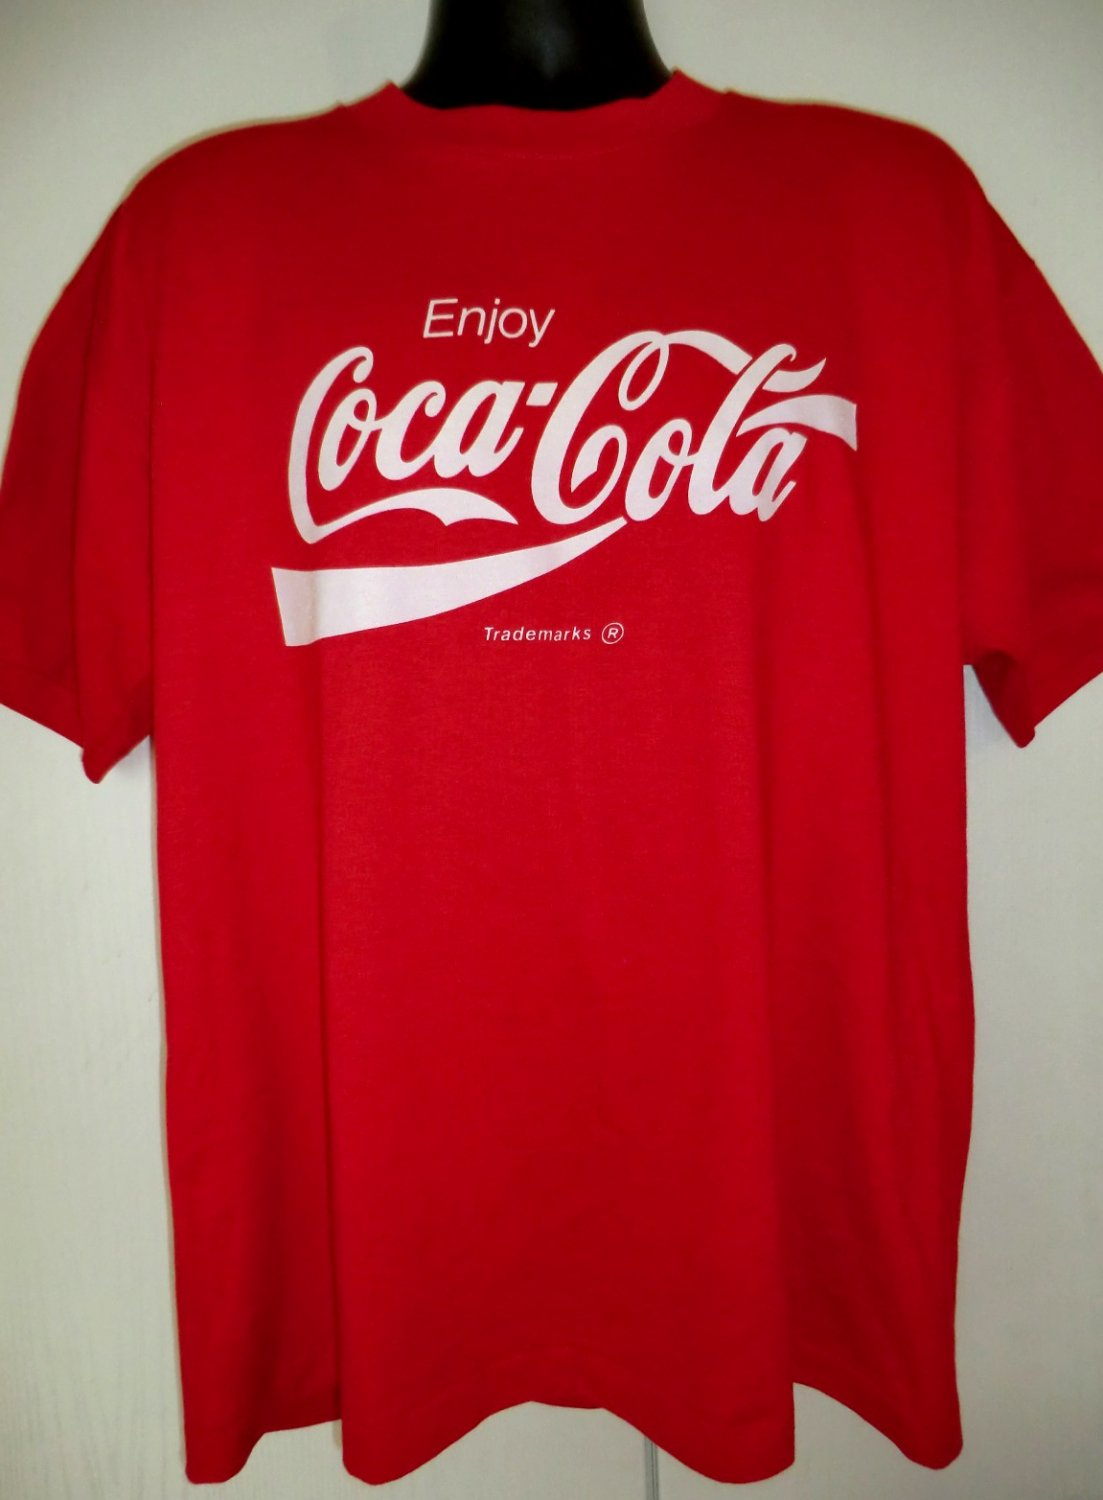 SOLD! Vintage Coca Cola Red T-Shirt Size XL Classic Coke Design